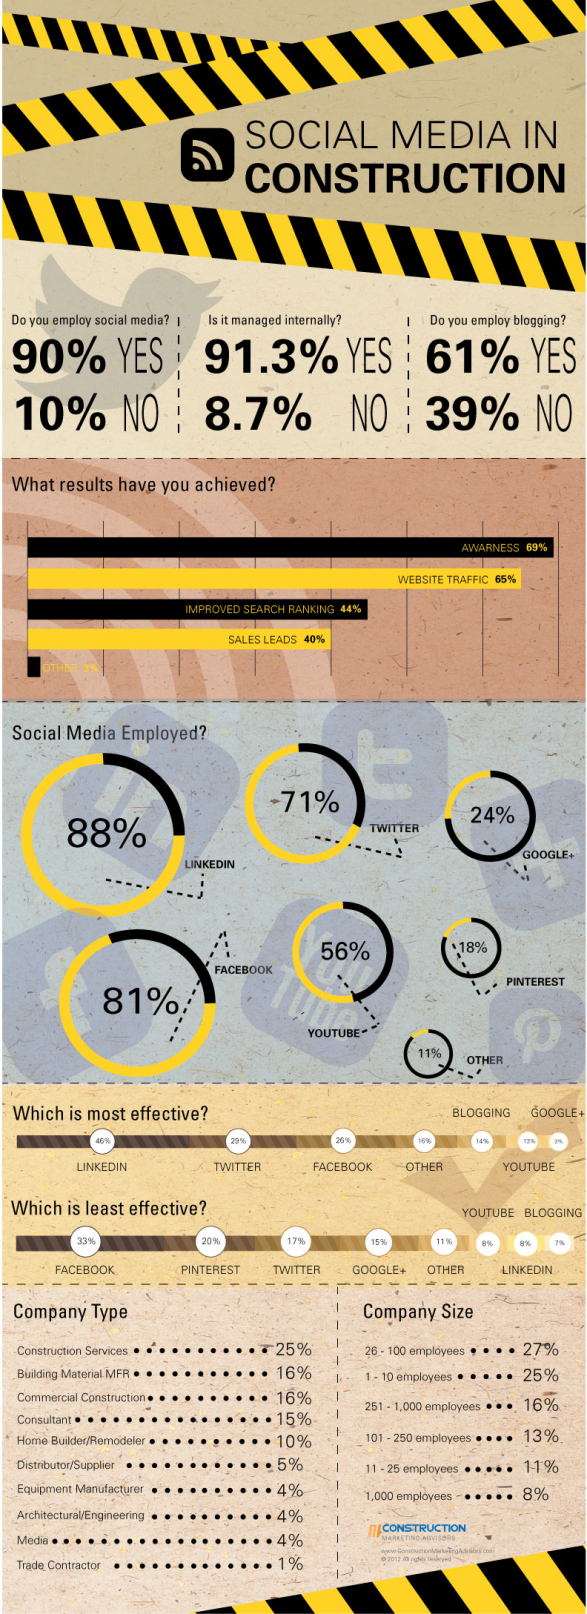 Social Media in Construction